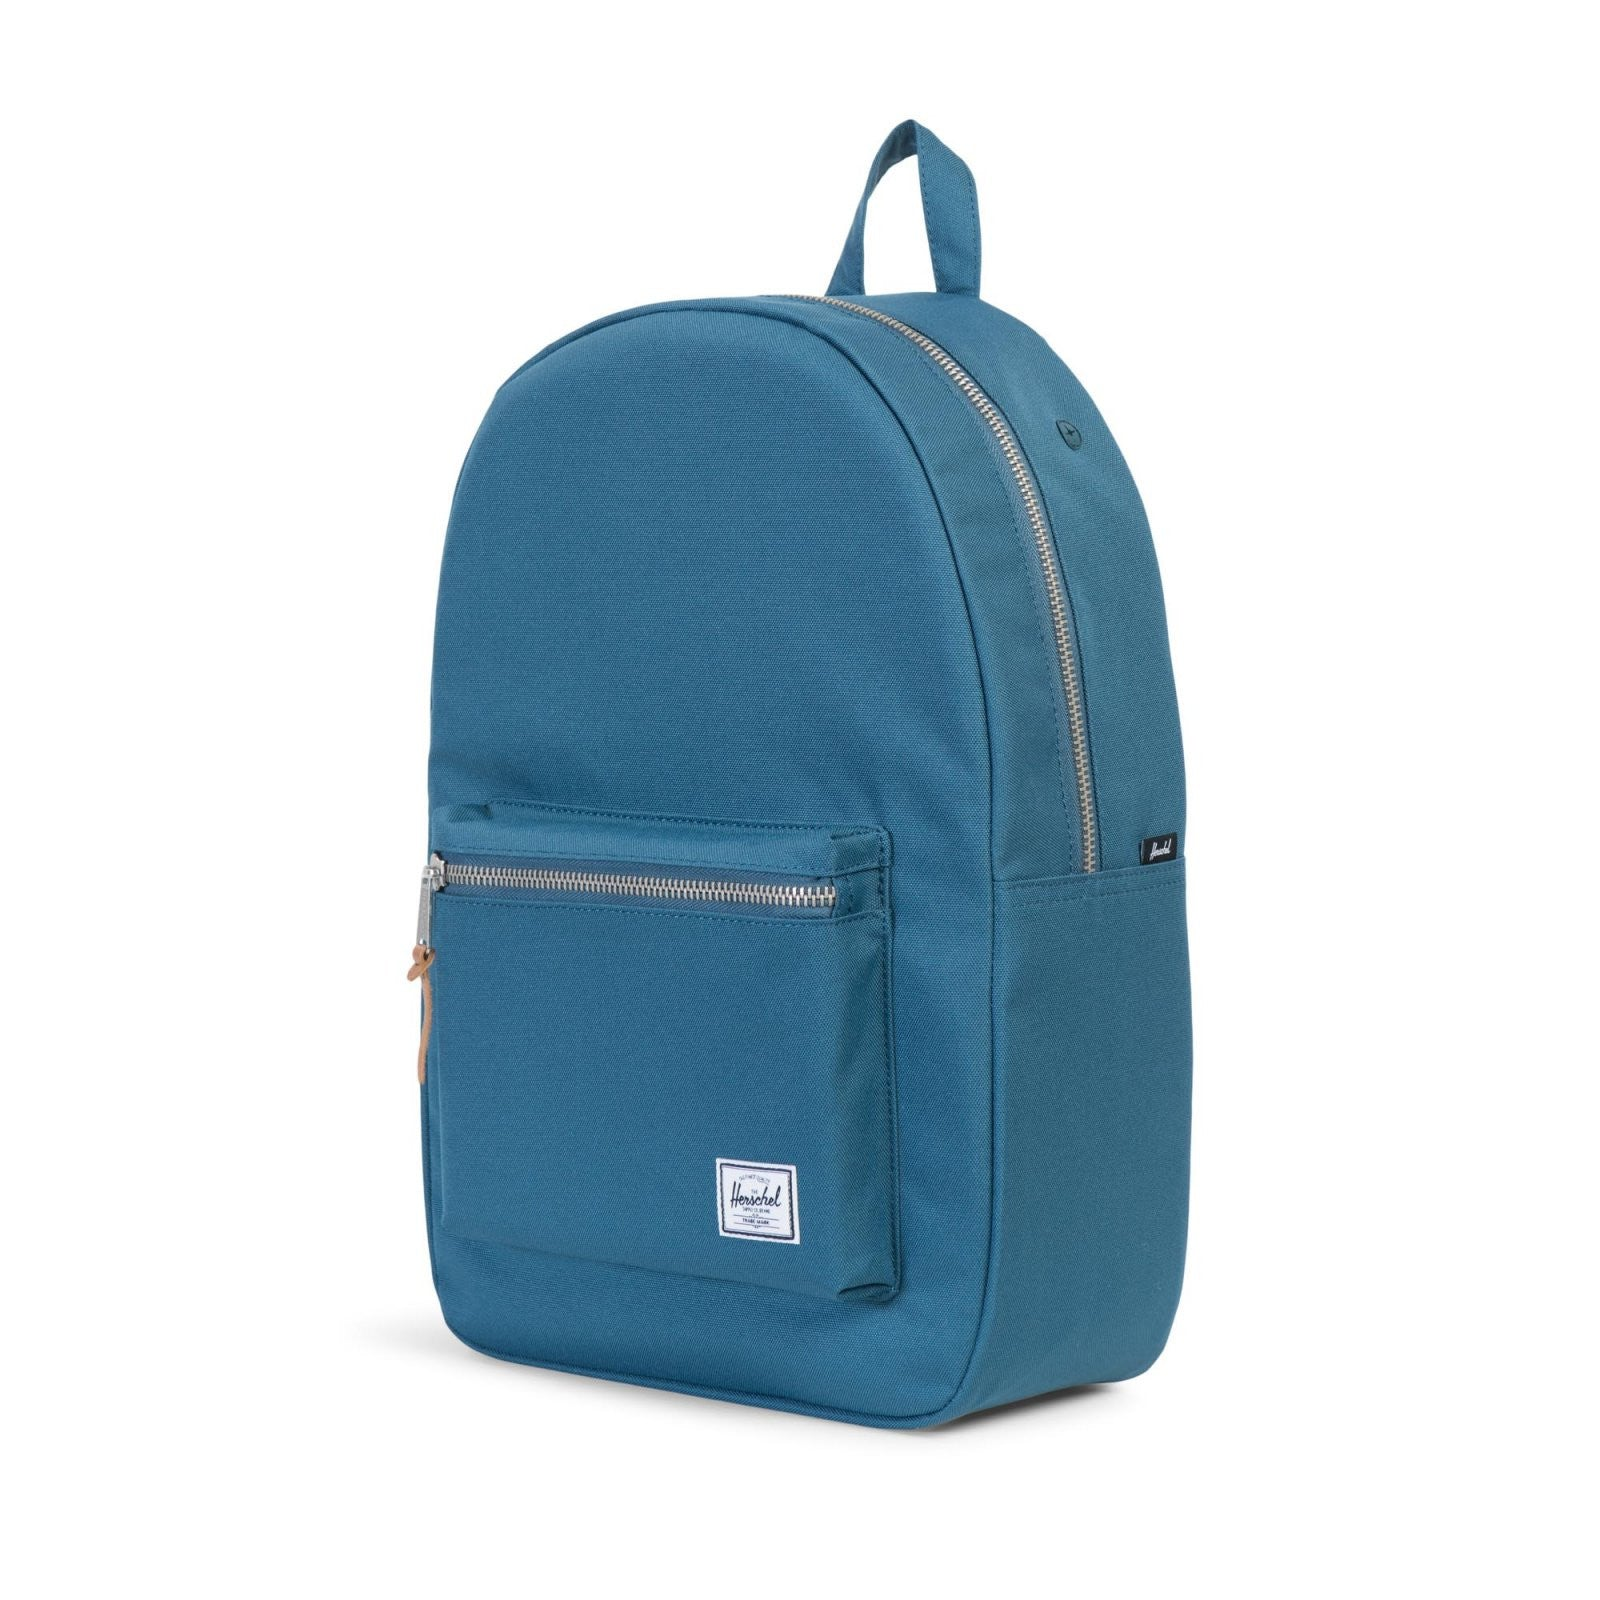 Herschel Supply Co. - Settlement Backpack, Indian Teal - The Giant Peach - 3